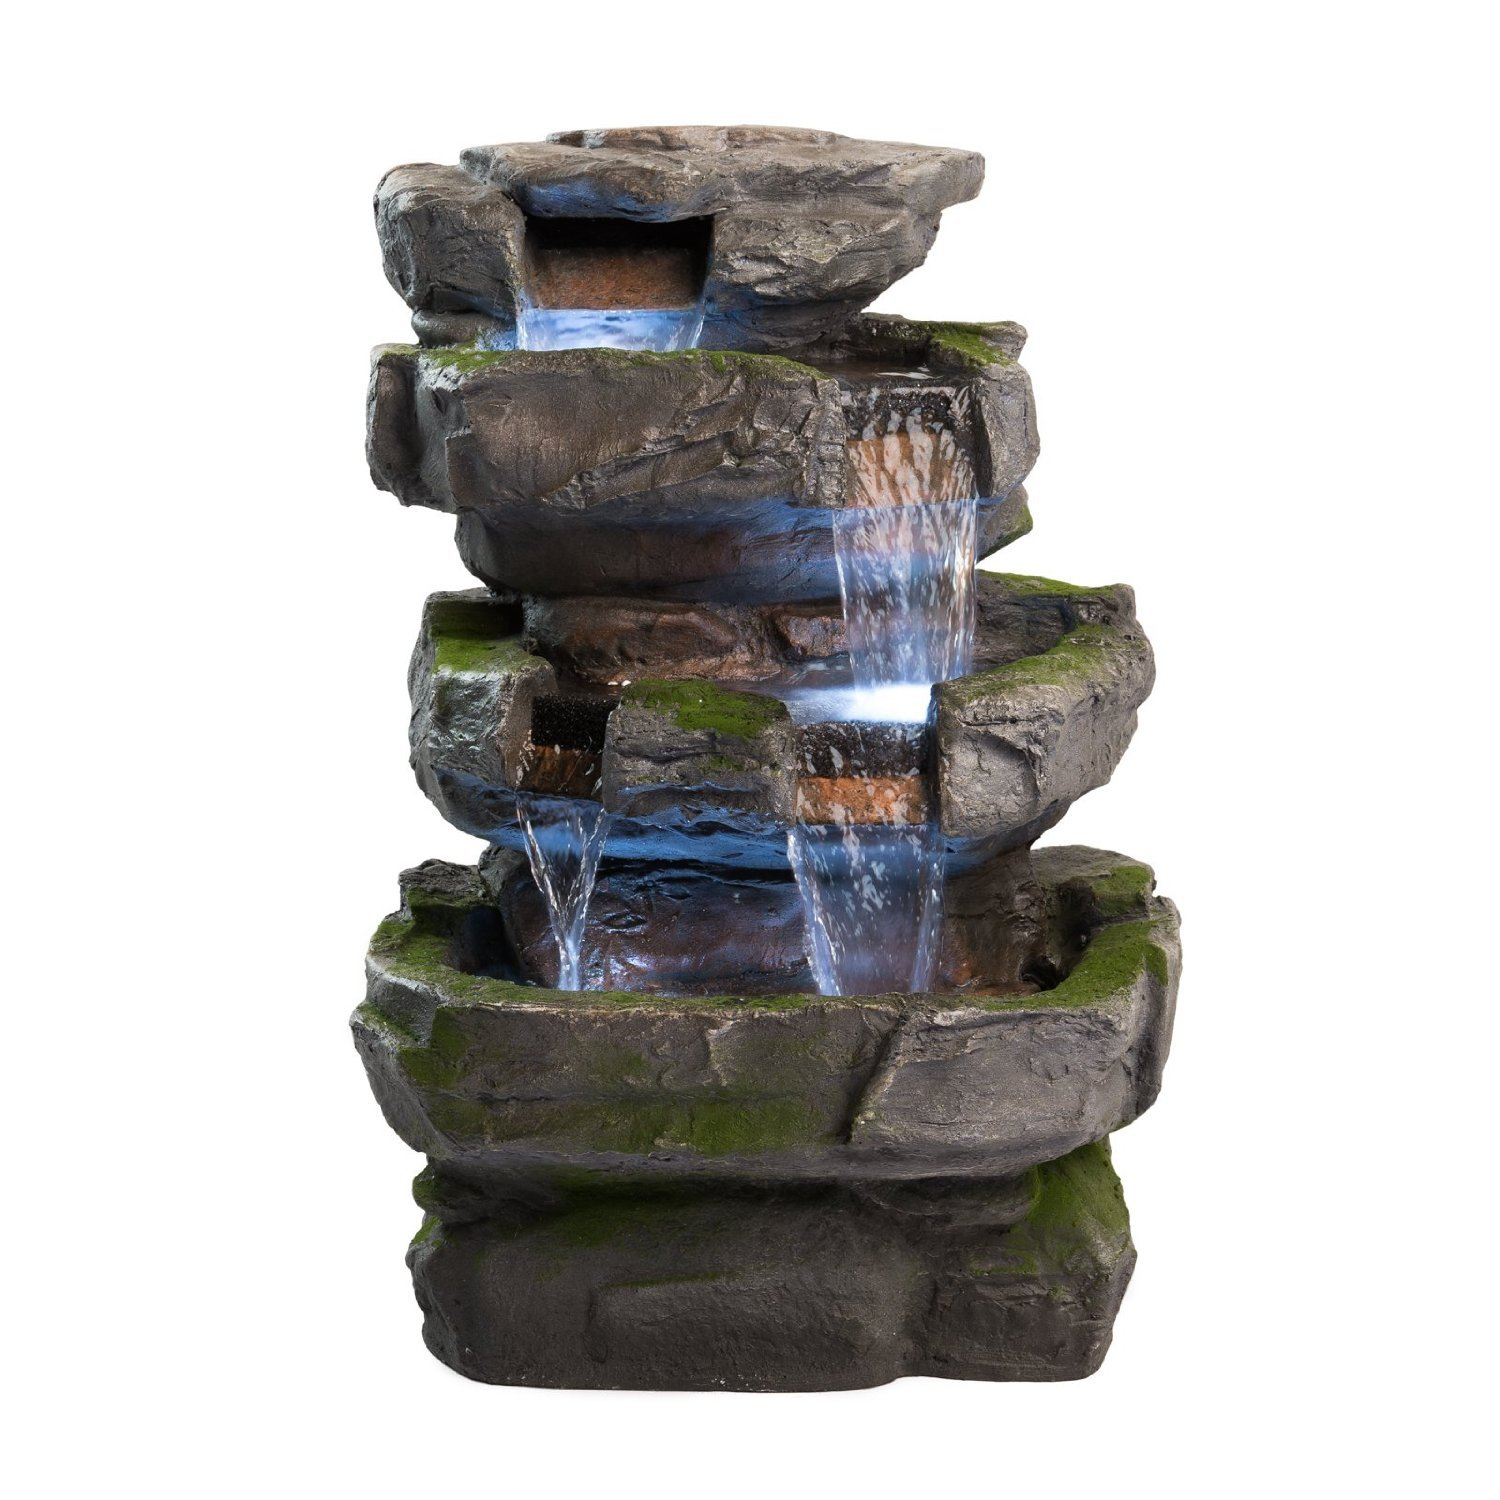 Wilson rock fountain stunning outdoor water feature for gardens patios weath ebay - How to build an outdoor fountain with rocks ...